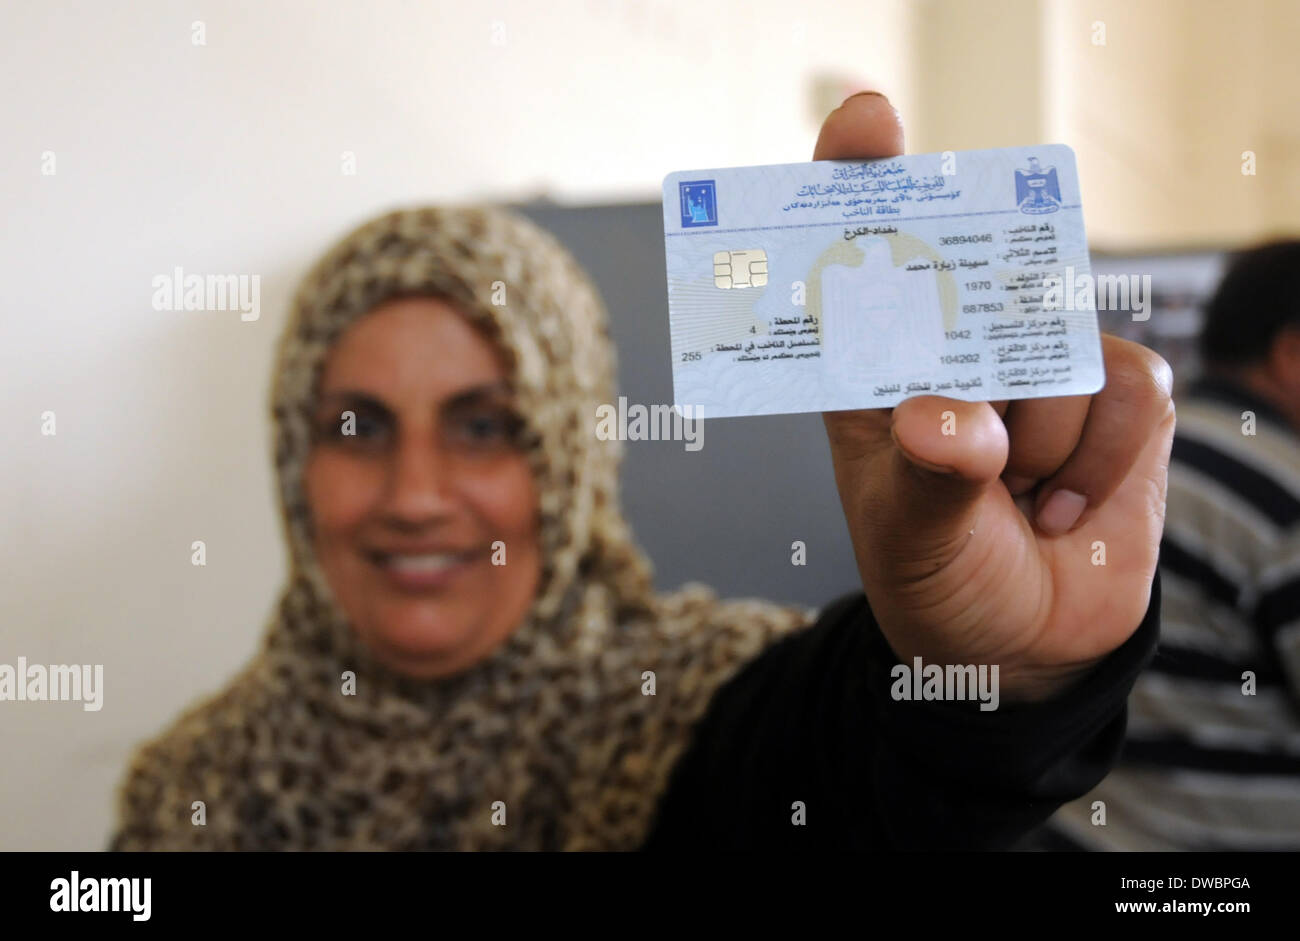 Baghdad, Iraq. 5th Mar, 2014. An electorate shows her electronic voter ID card in Baghdad, Iraq, March 5, 2014. The Iraqi election commission distributes electronic voter ID cards nationwide ahead of the parliamentary election scheduled on April 30. This will be the country's first parliamentary election since the 2011 withdrawal of the U.S. forces. © Liang Youchang/Xinhua/Alamy Live News - Stock Image